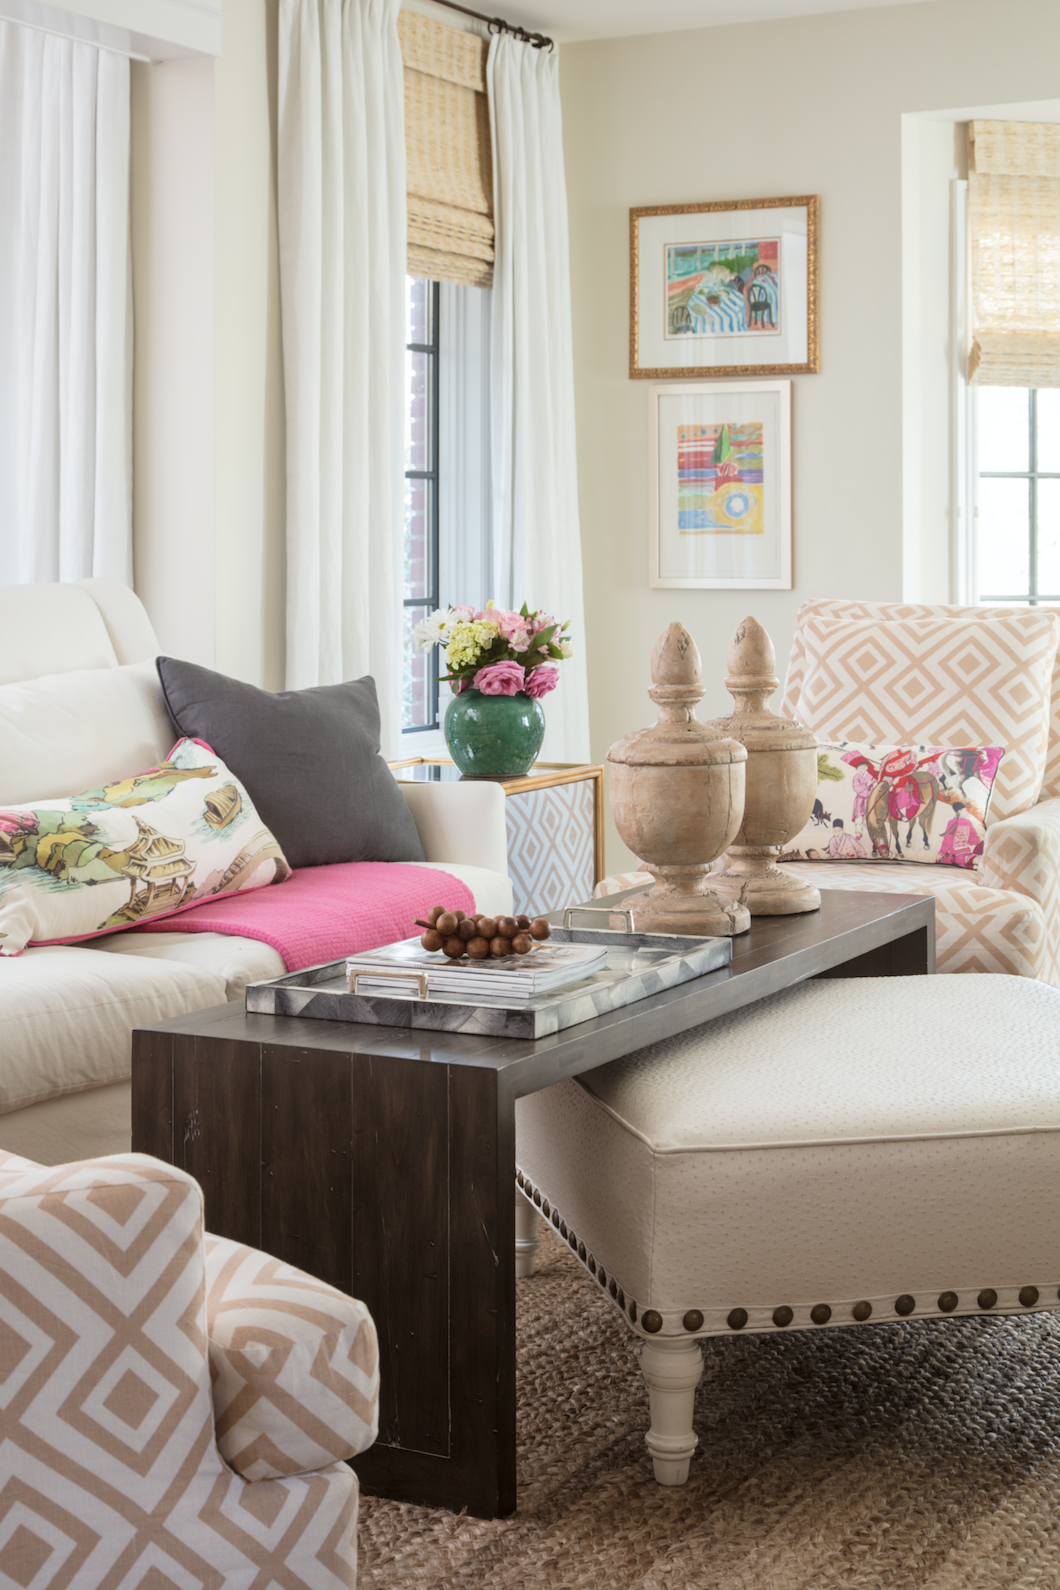 Marcia Fryer Landscape Designs | Living Room with Fresh Neutrals.png